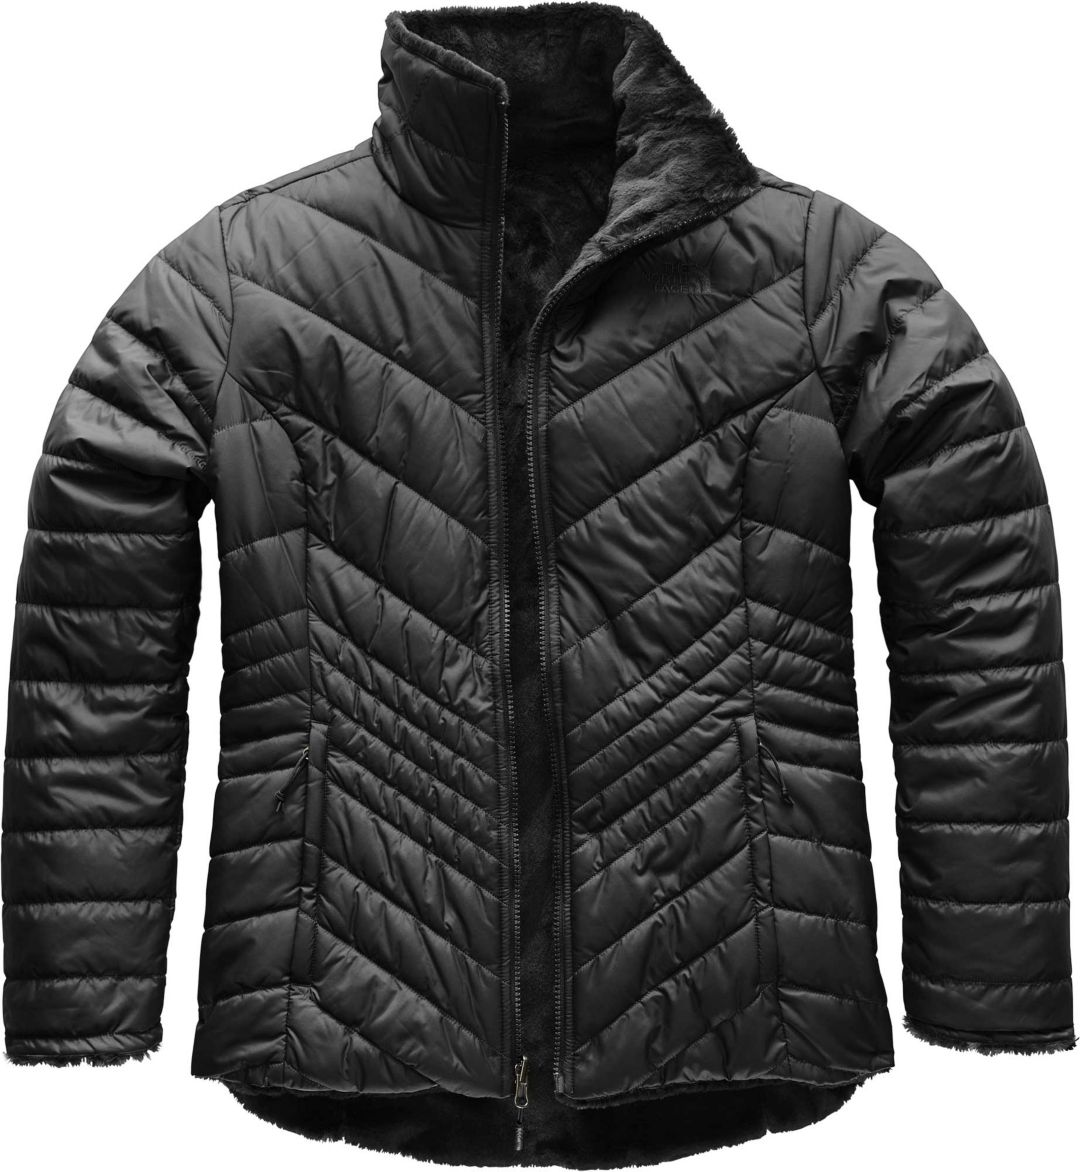 be87fe313 The North Face Women's Mossbud Reversible Insulated Jacket   DICK'S ...